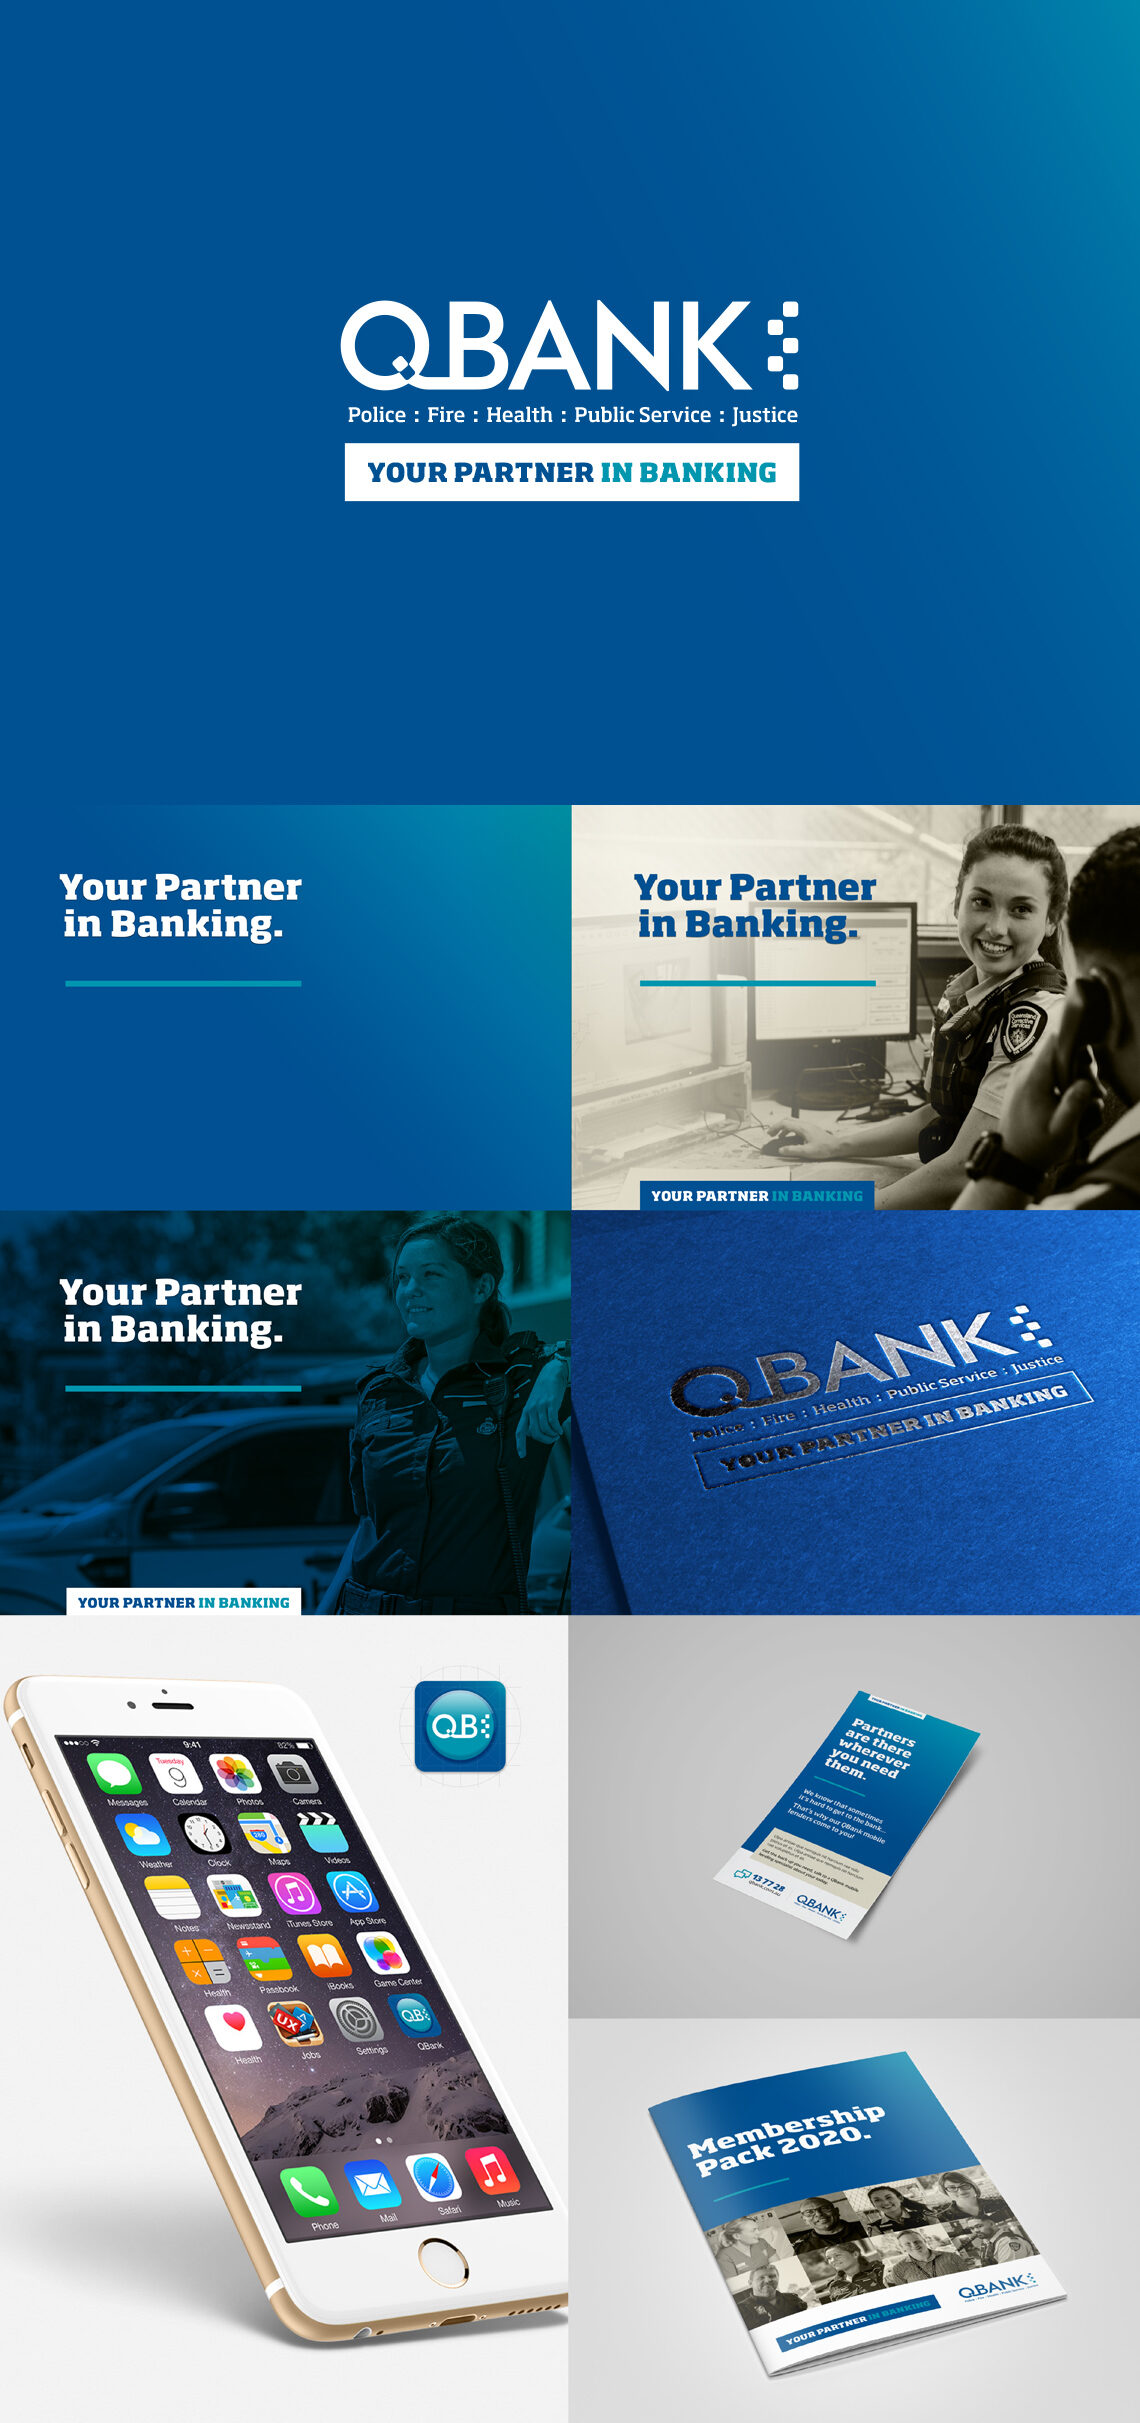 QBank Brand refresh and corporate graphic design